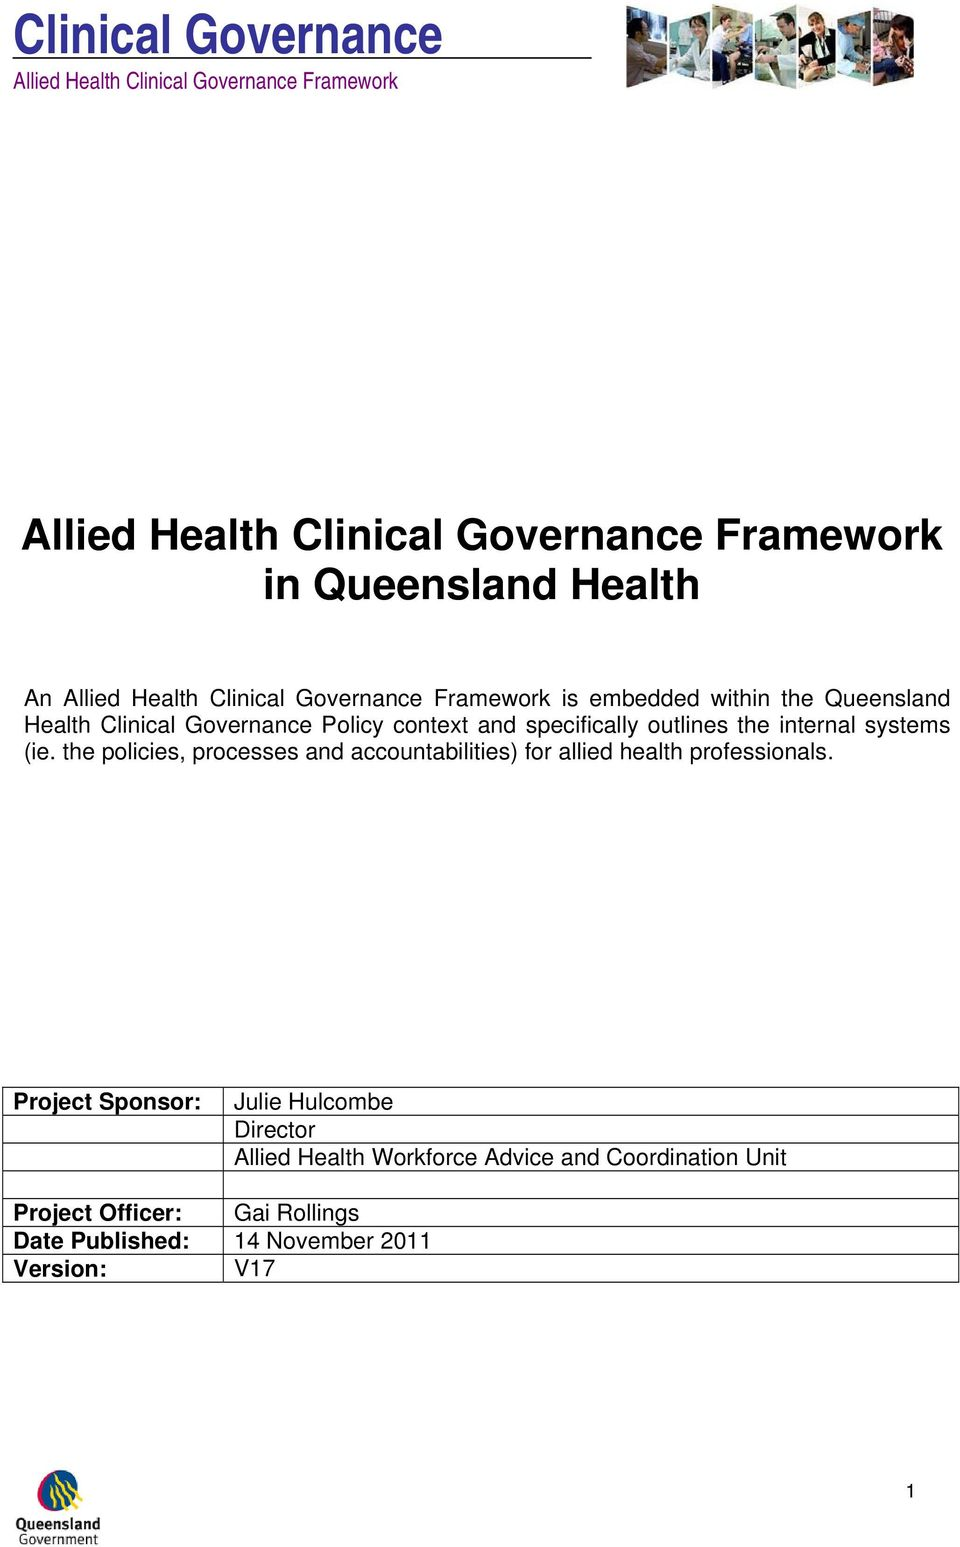 the policies, processes and accountabilities) for allied health professionals.